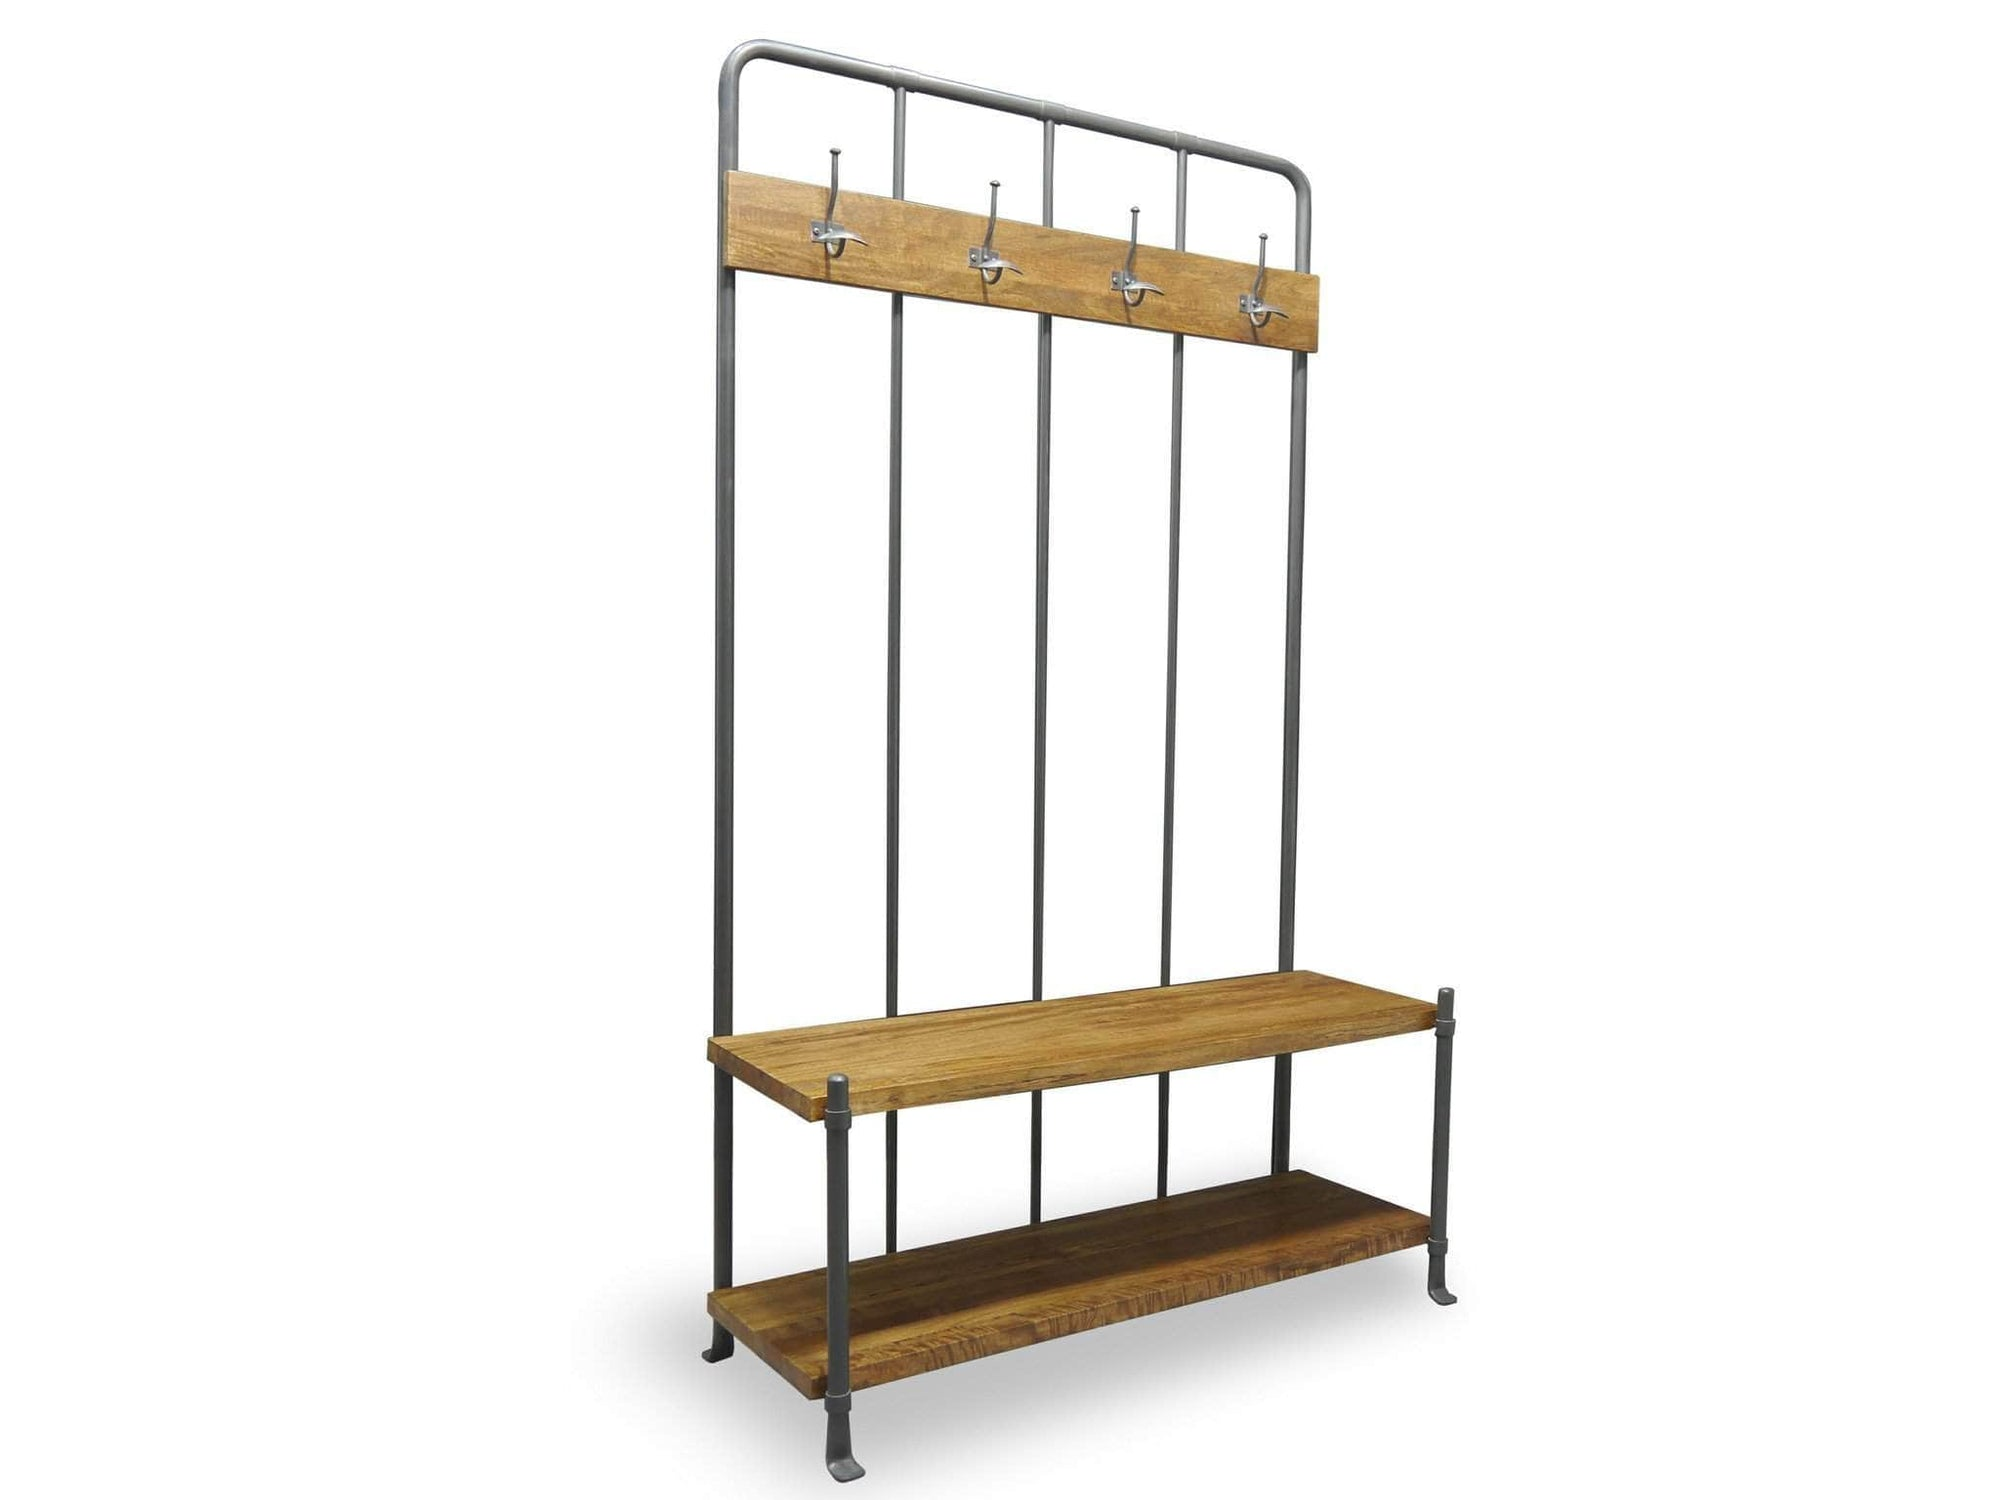 Industrial style freestanding hallway coat rack. Bottom of unit includes bench and storage shelf. Made from mango wood and steel.